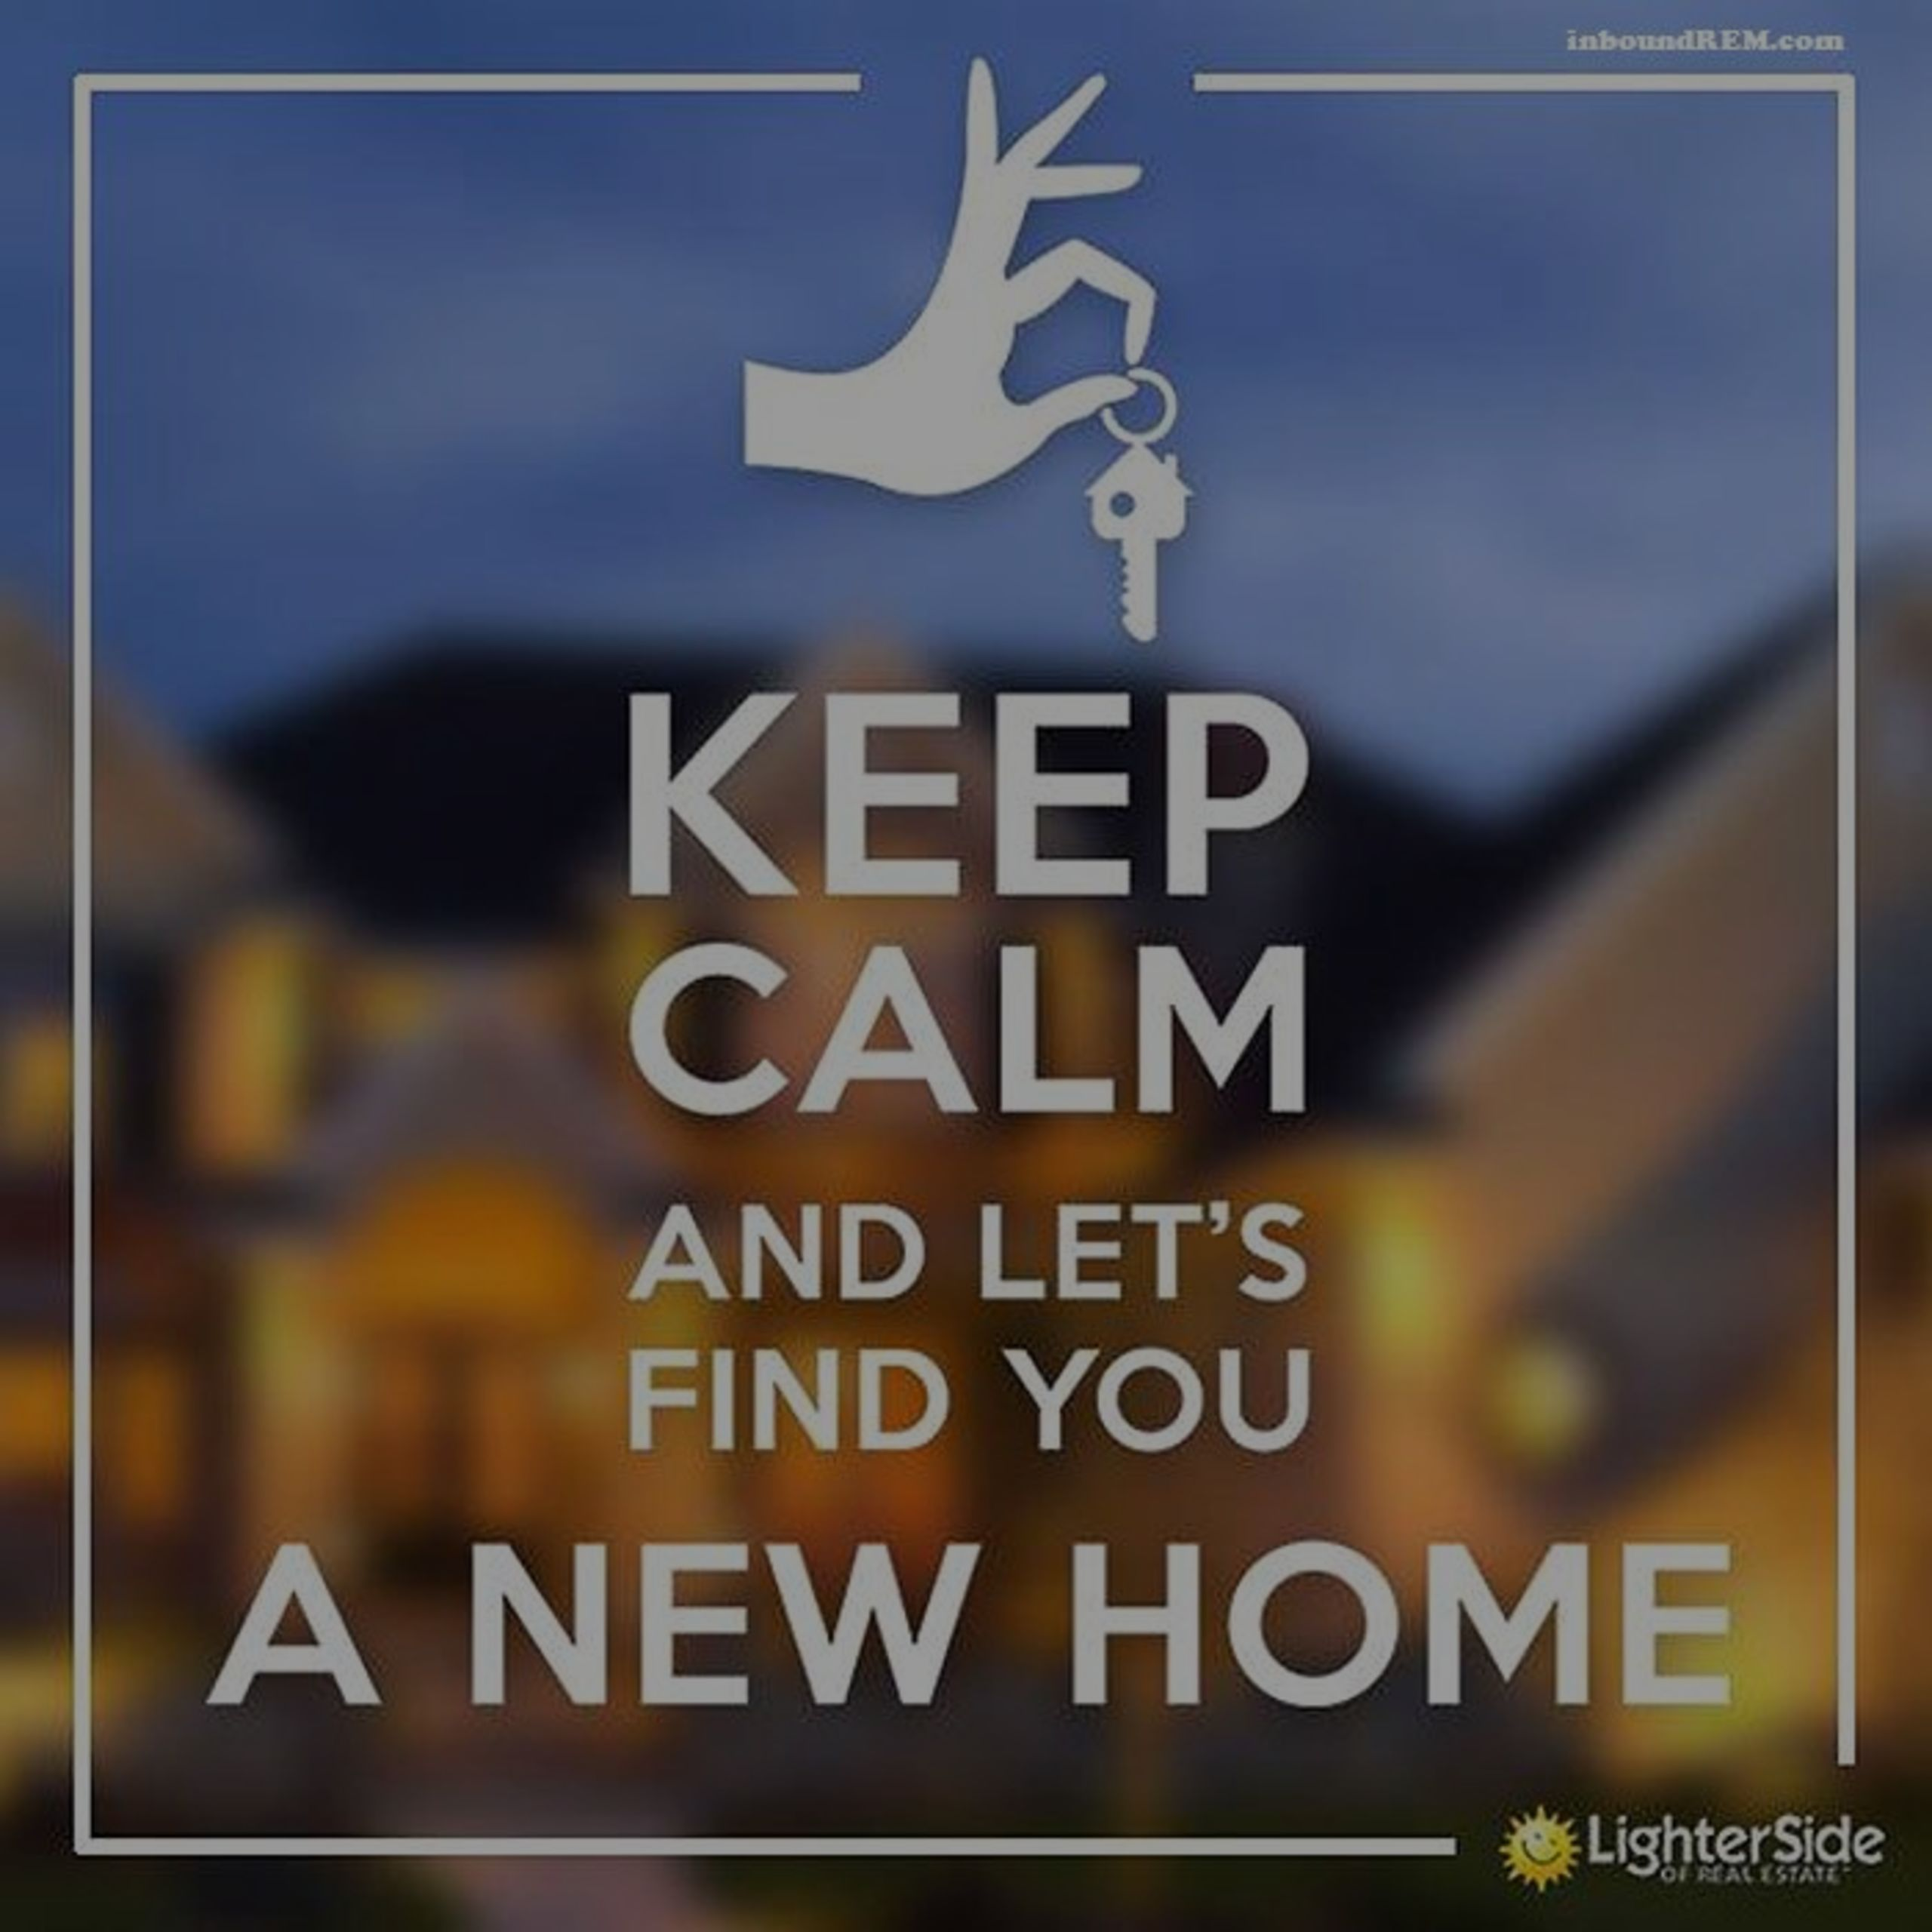 Happy Friday! Now Lets Find You A New Home!